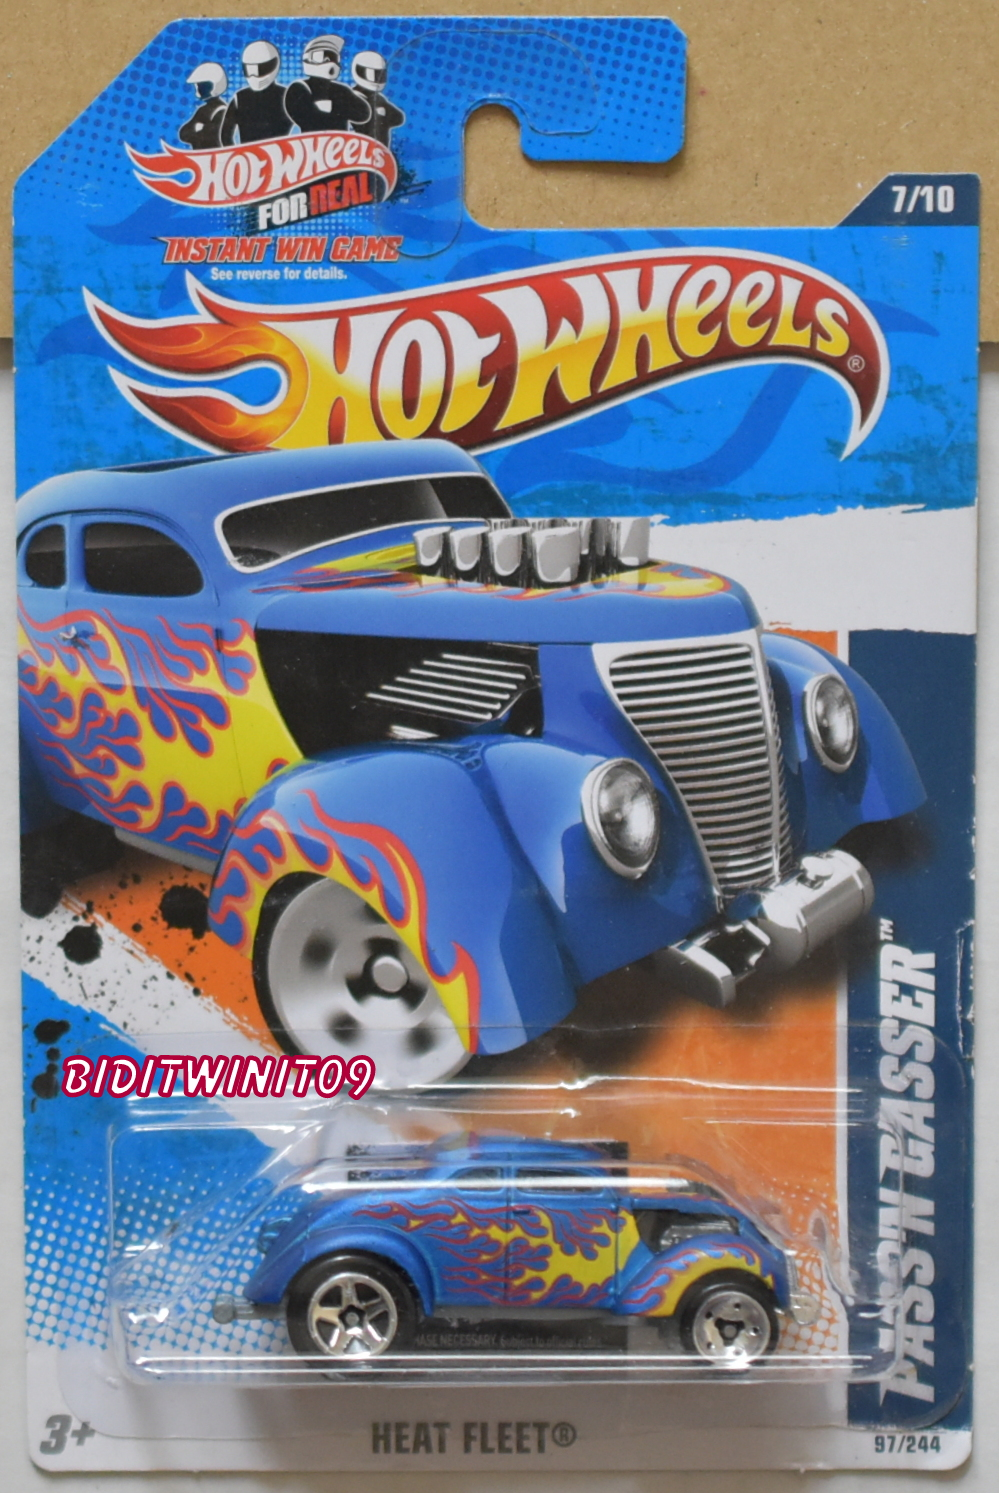 HOT WHEELS 2011 PASS'N GASSER HEAT FLEET #7/10 BLUE